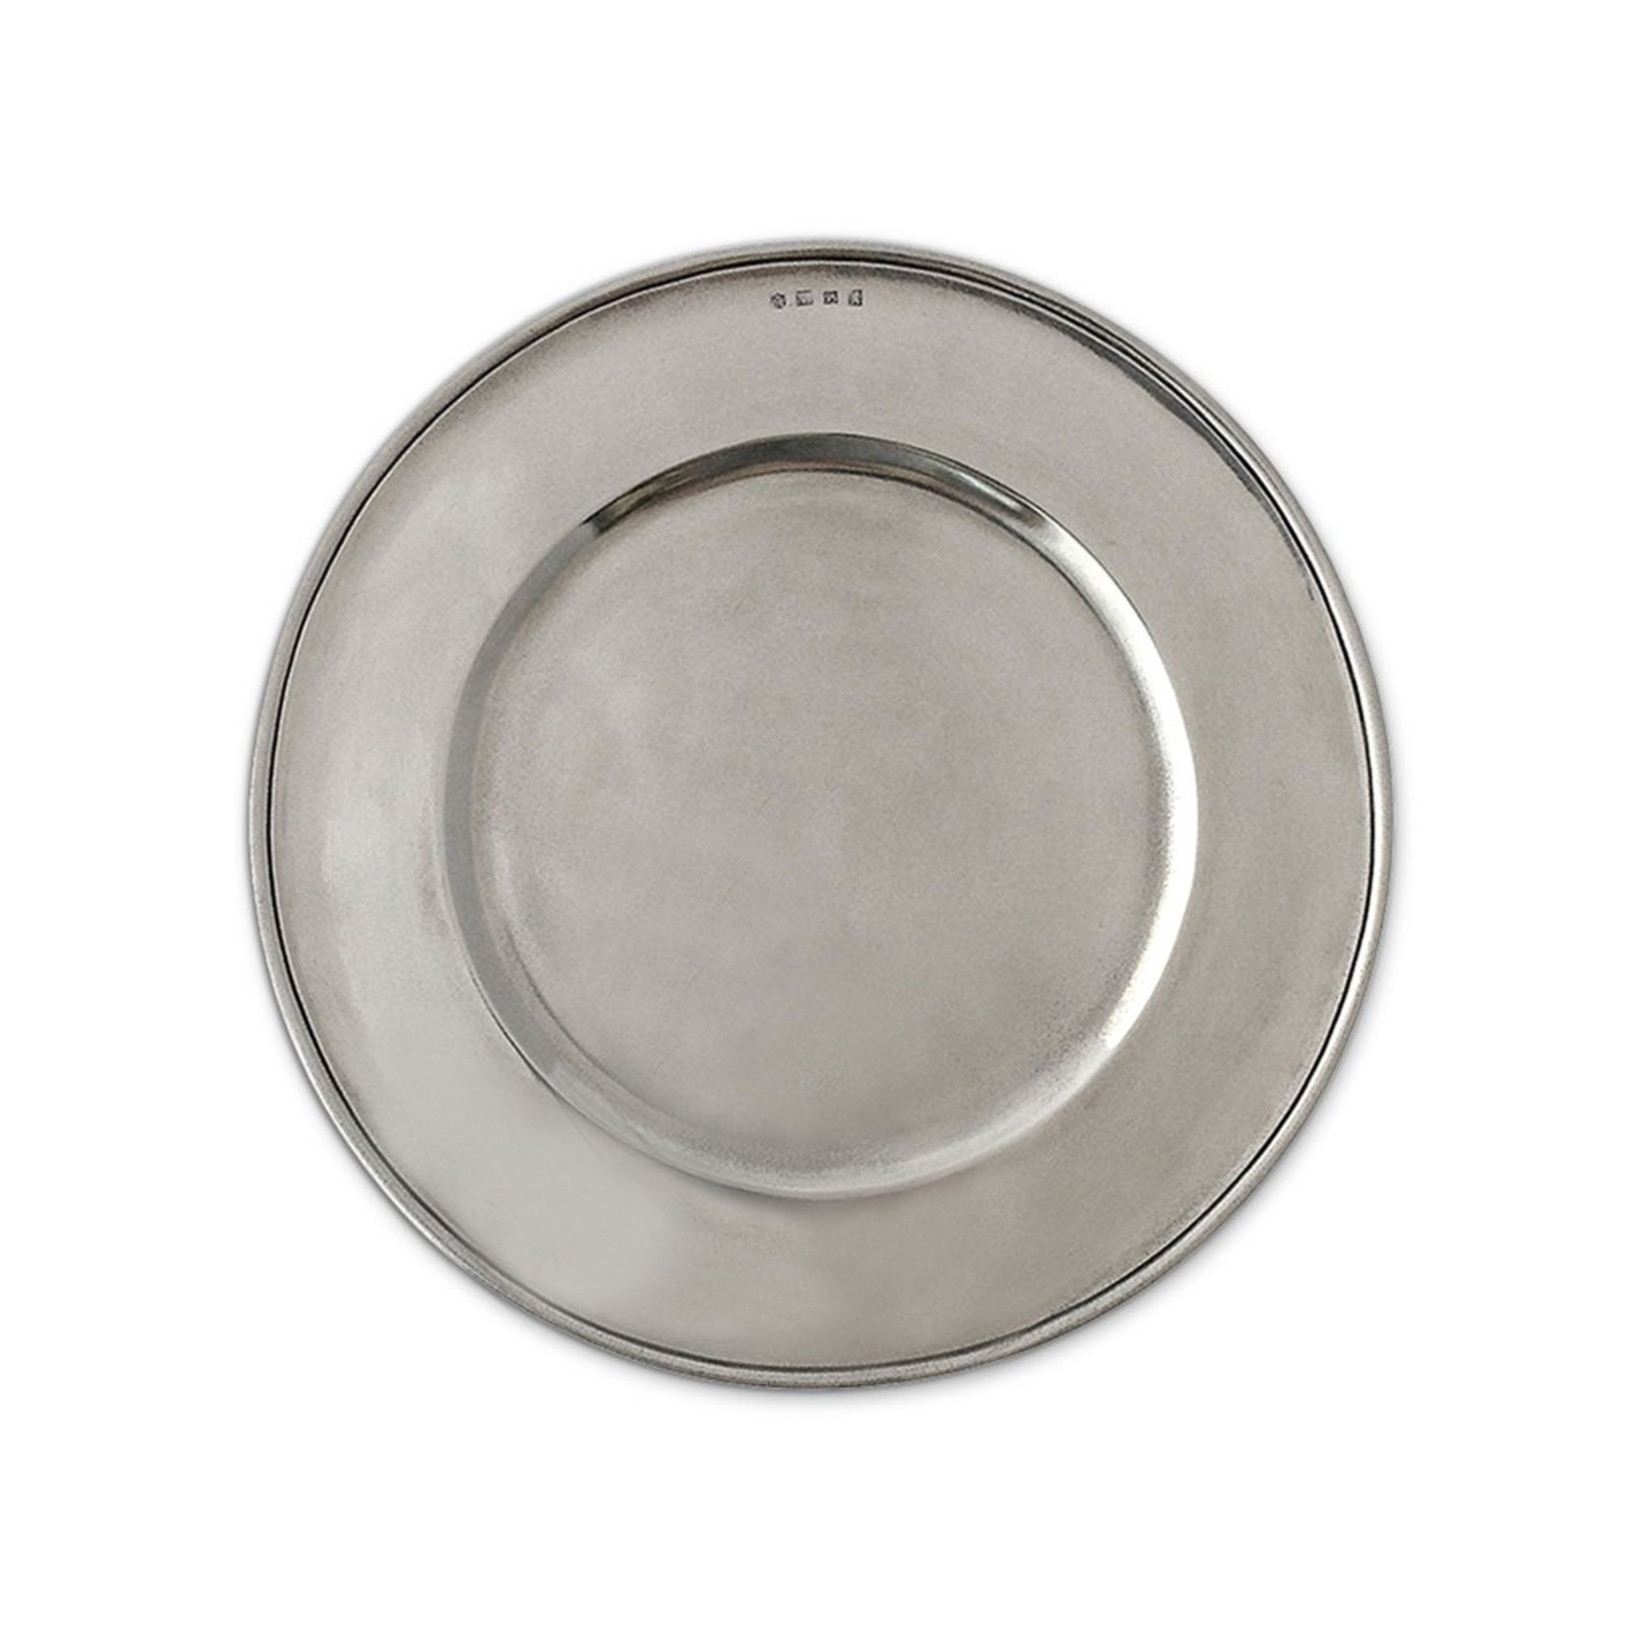 Match Pewter Convivio Charger